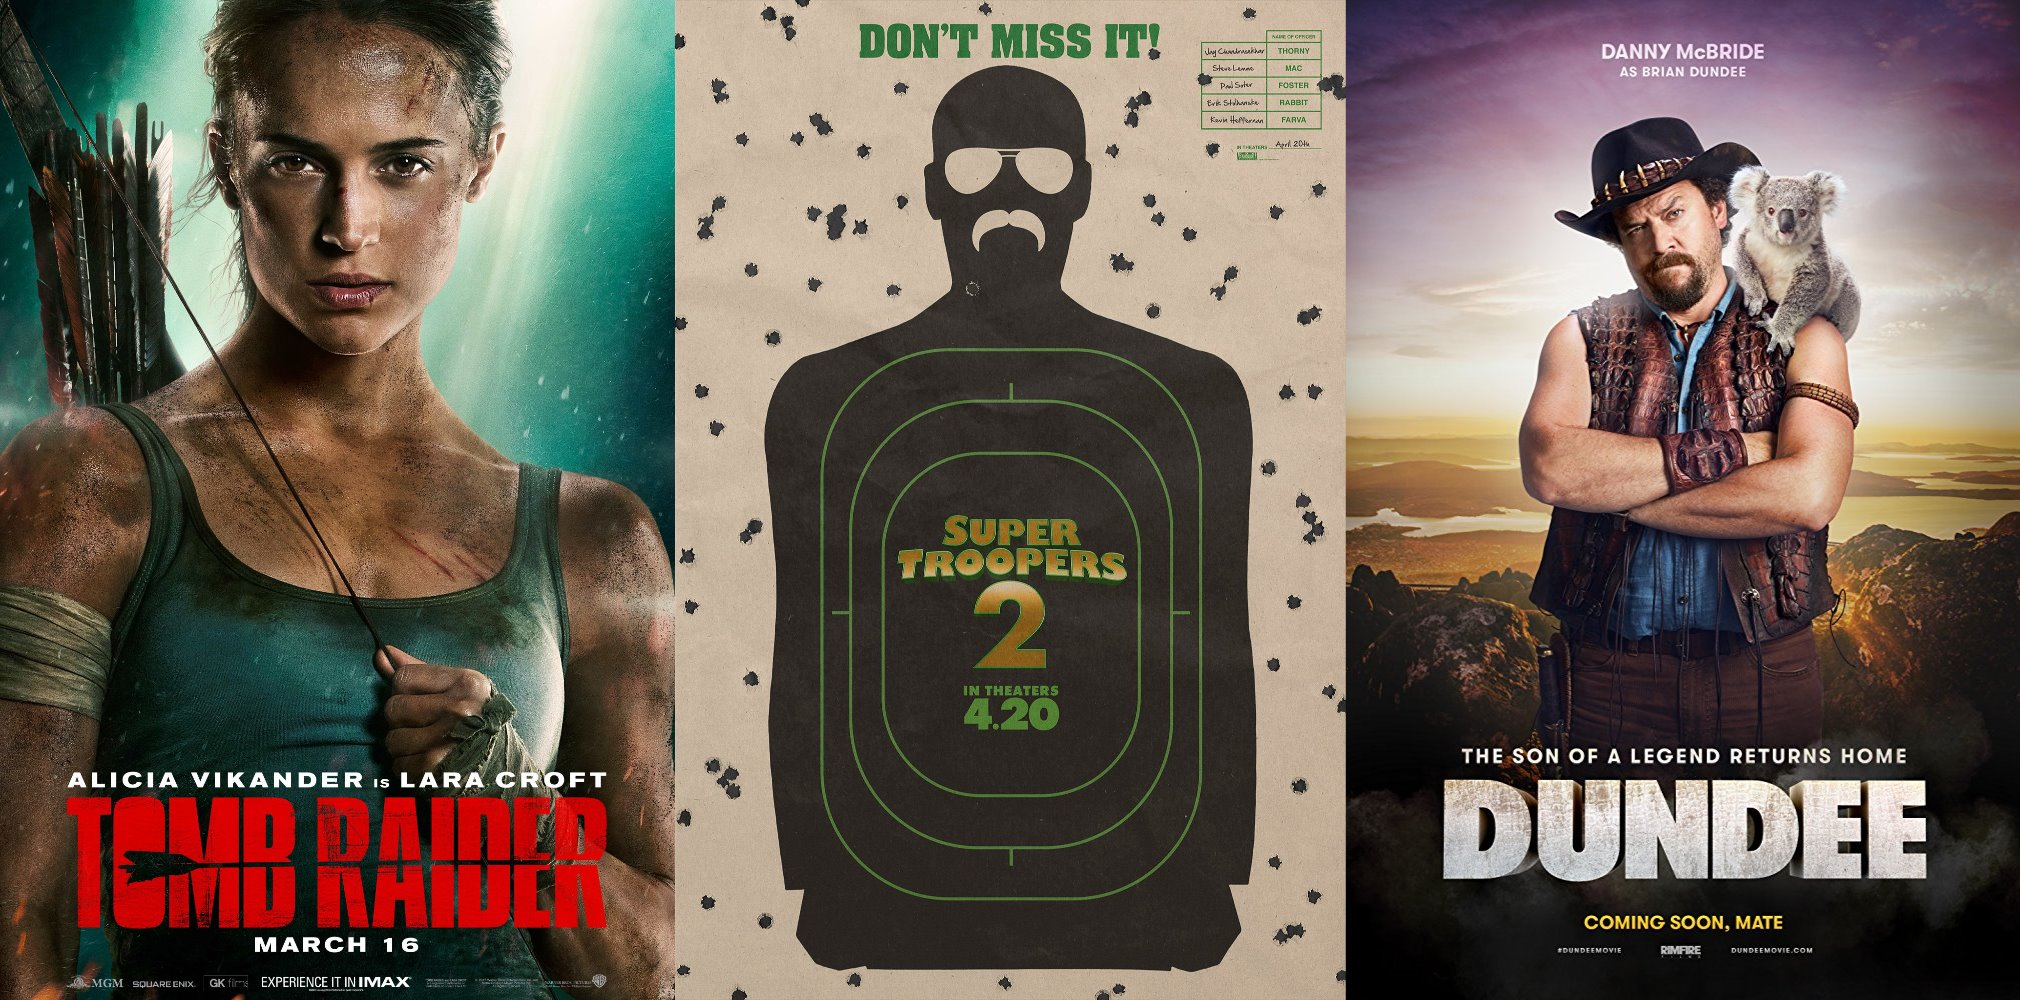 Trailer-Watchin' Wednesday: Tomb Raider, Dundee, Super Troopers 2